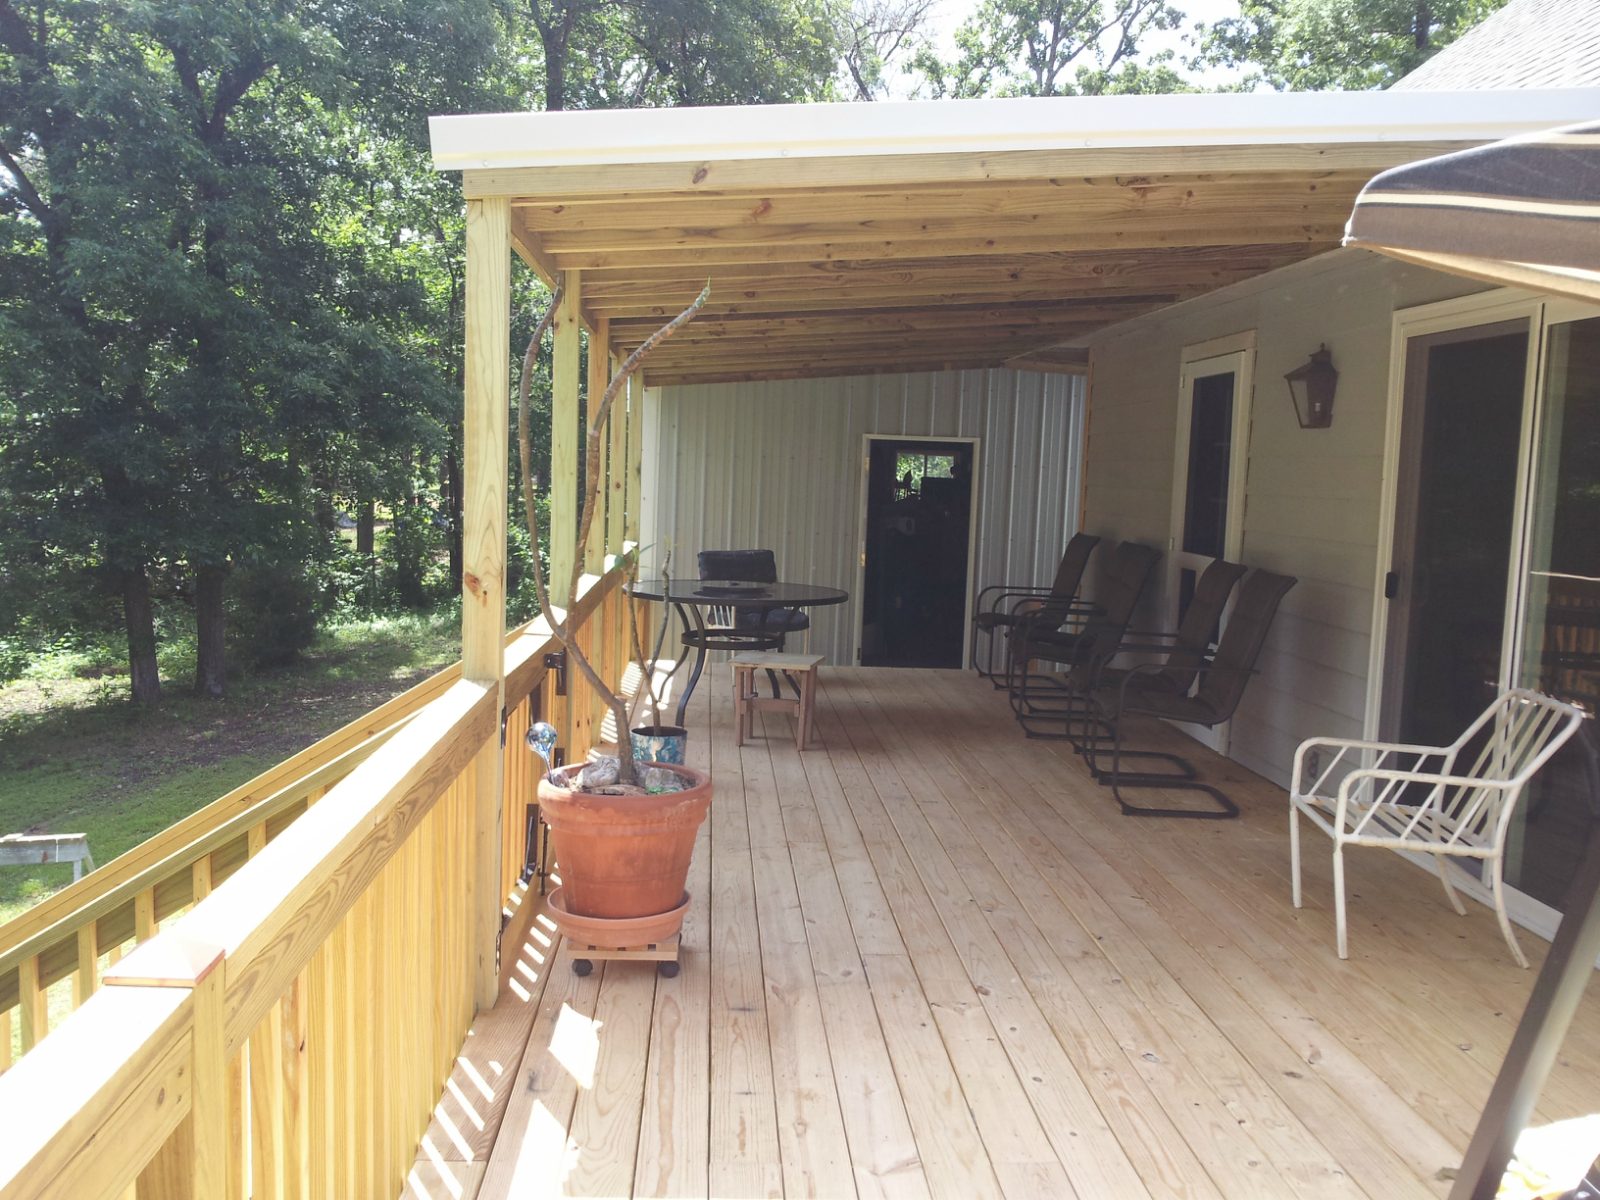 Client Requested A Gated Deck That Included A Roof Extension To in measurements 1600 X 1200